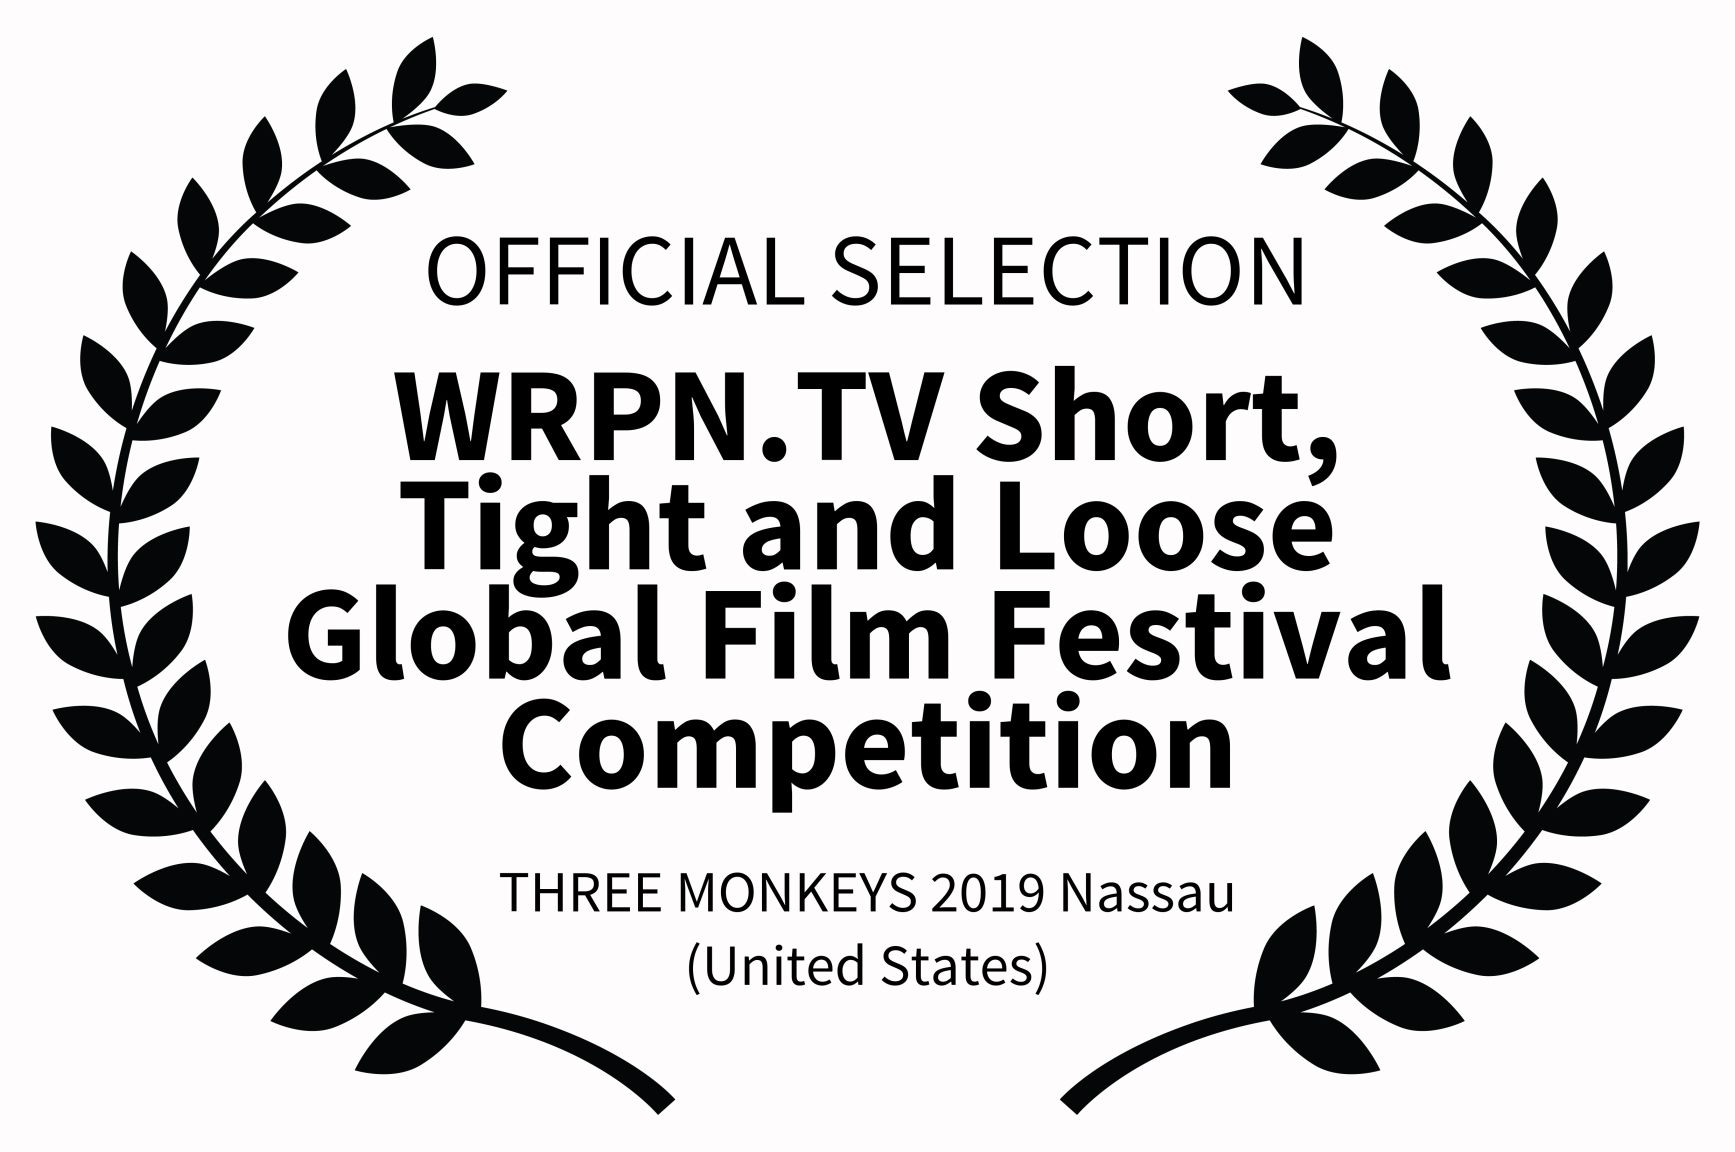 THREEMONKEYS-OFFICIAL SELECTION - WRPN